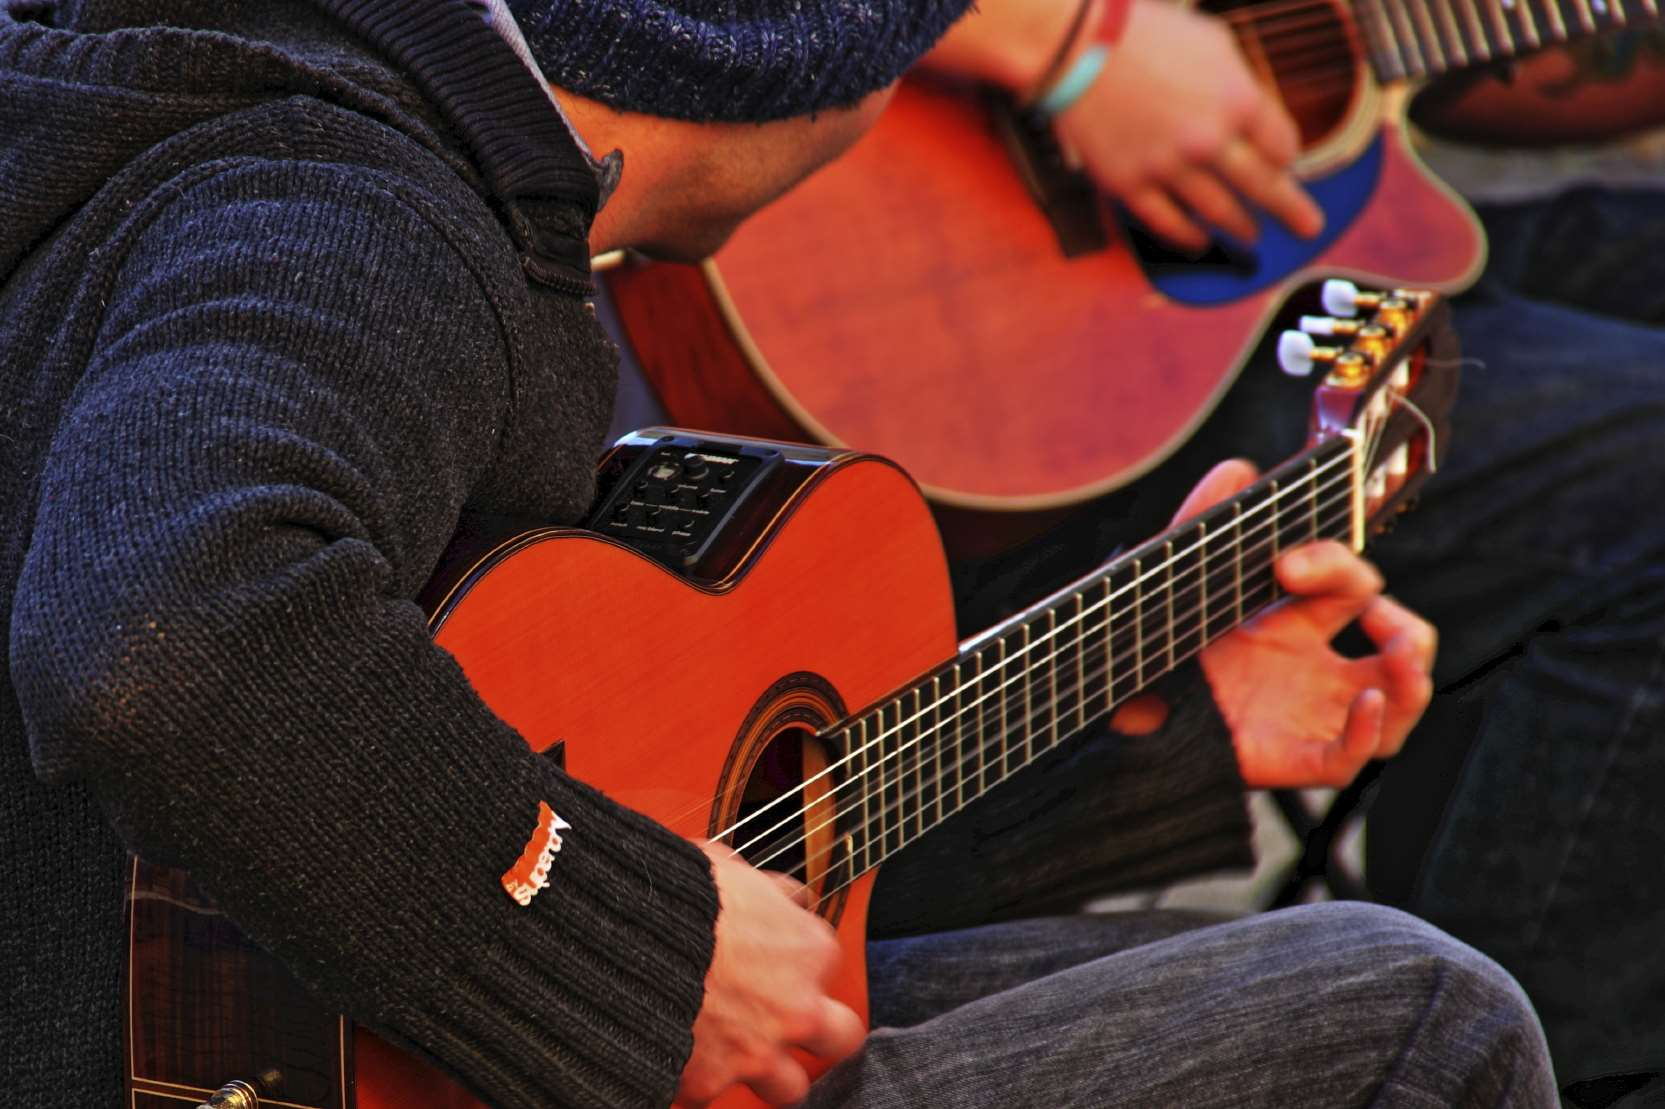 Buskers' instruments could be trashed under Canterbury's plans